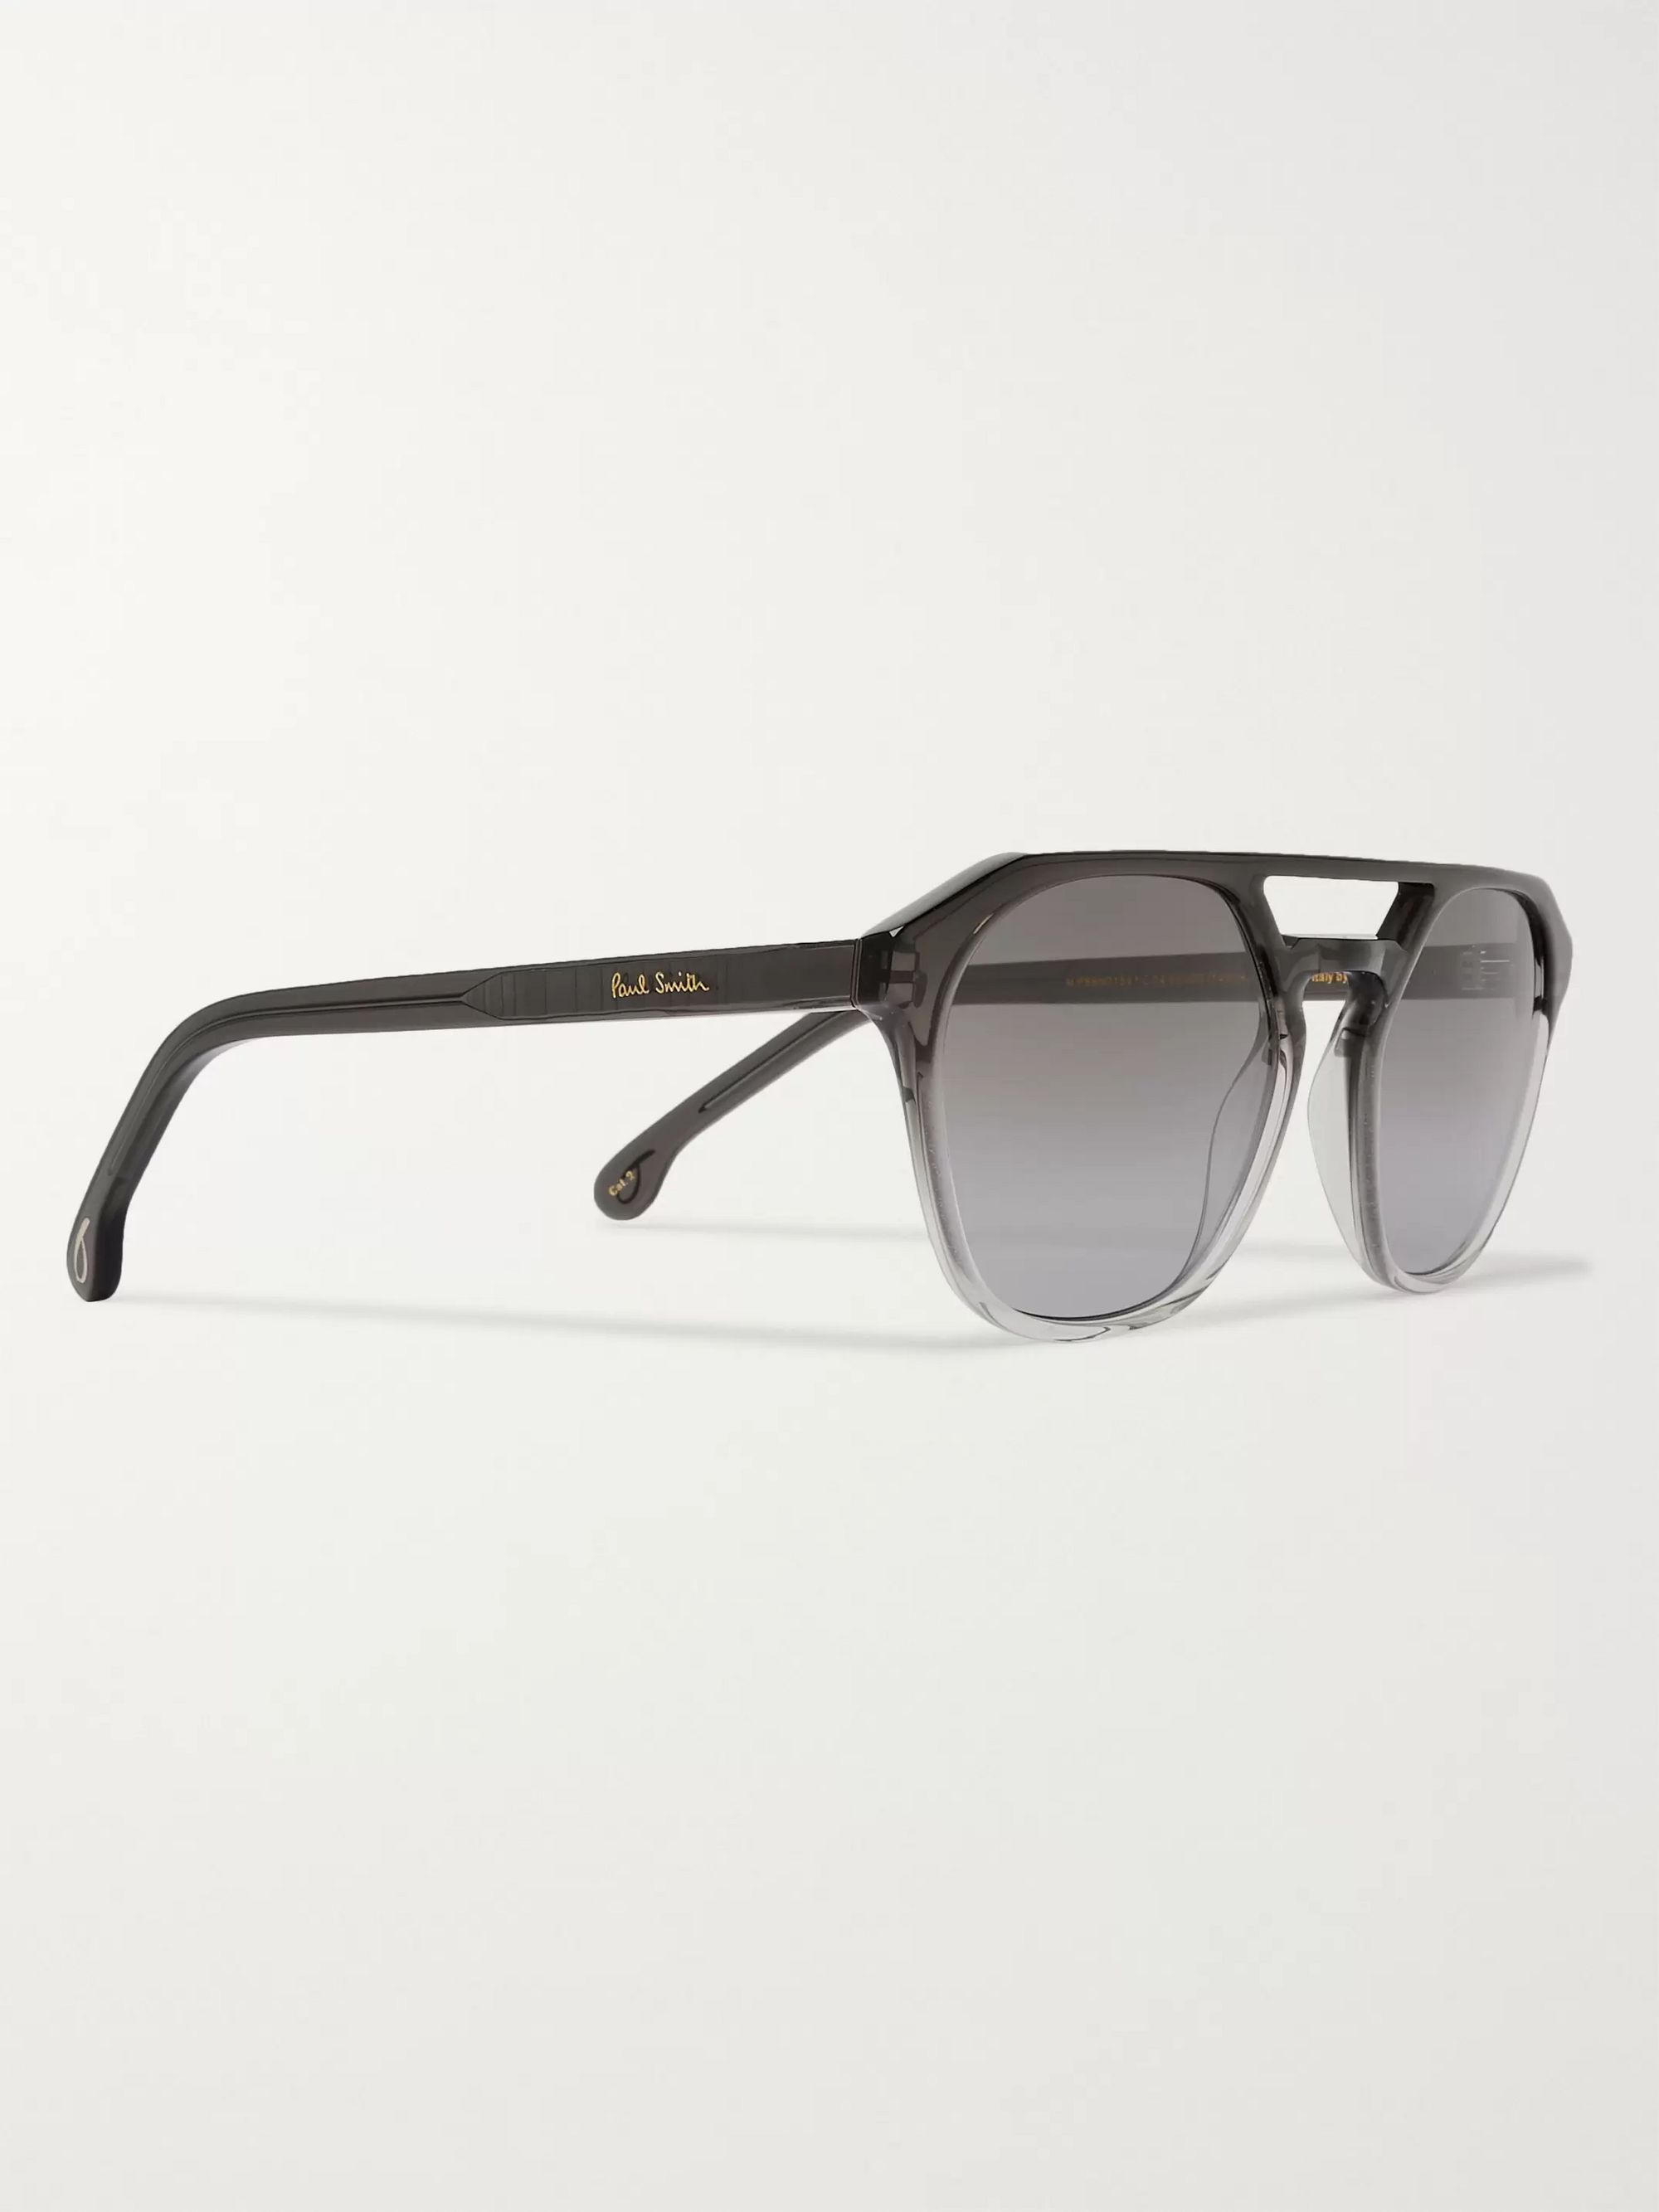 Black + Cutler And Gross Barford Aviator-style Acetate Sunglasses | Paul Smith